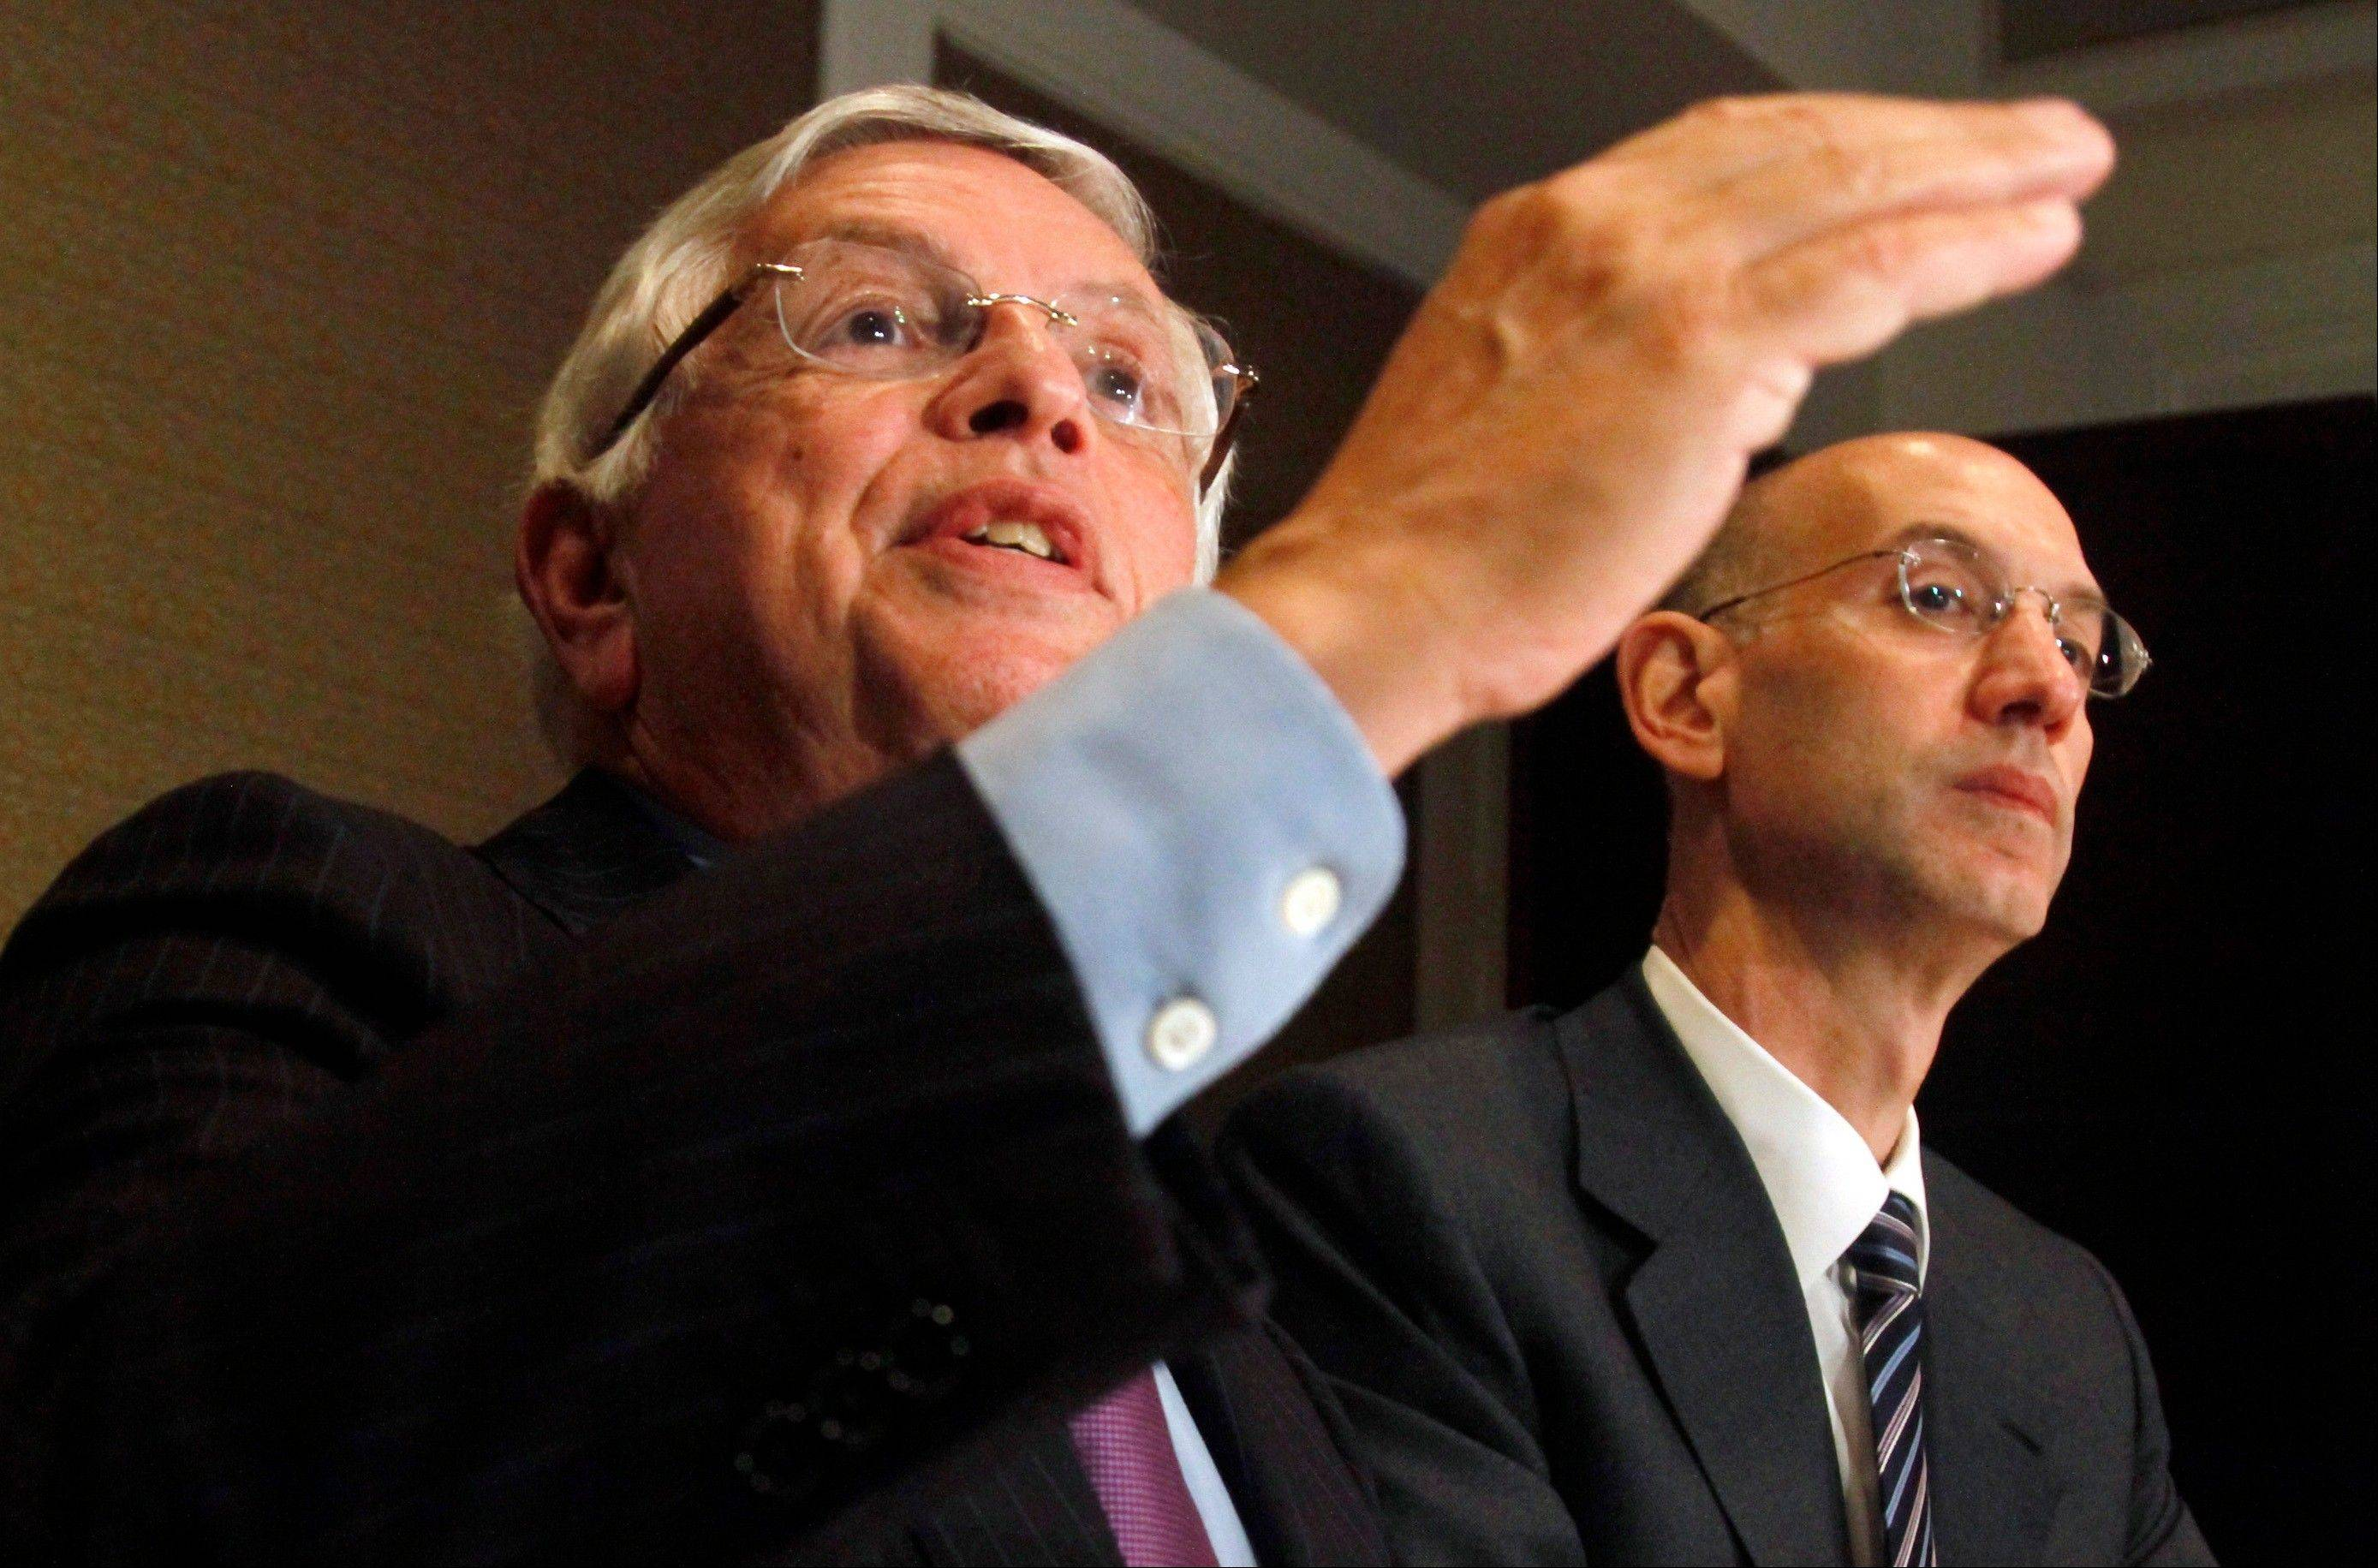 David Stern, left, has retired as NBA commissioner, putting Adam Silver, right, in charge.